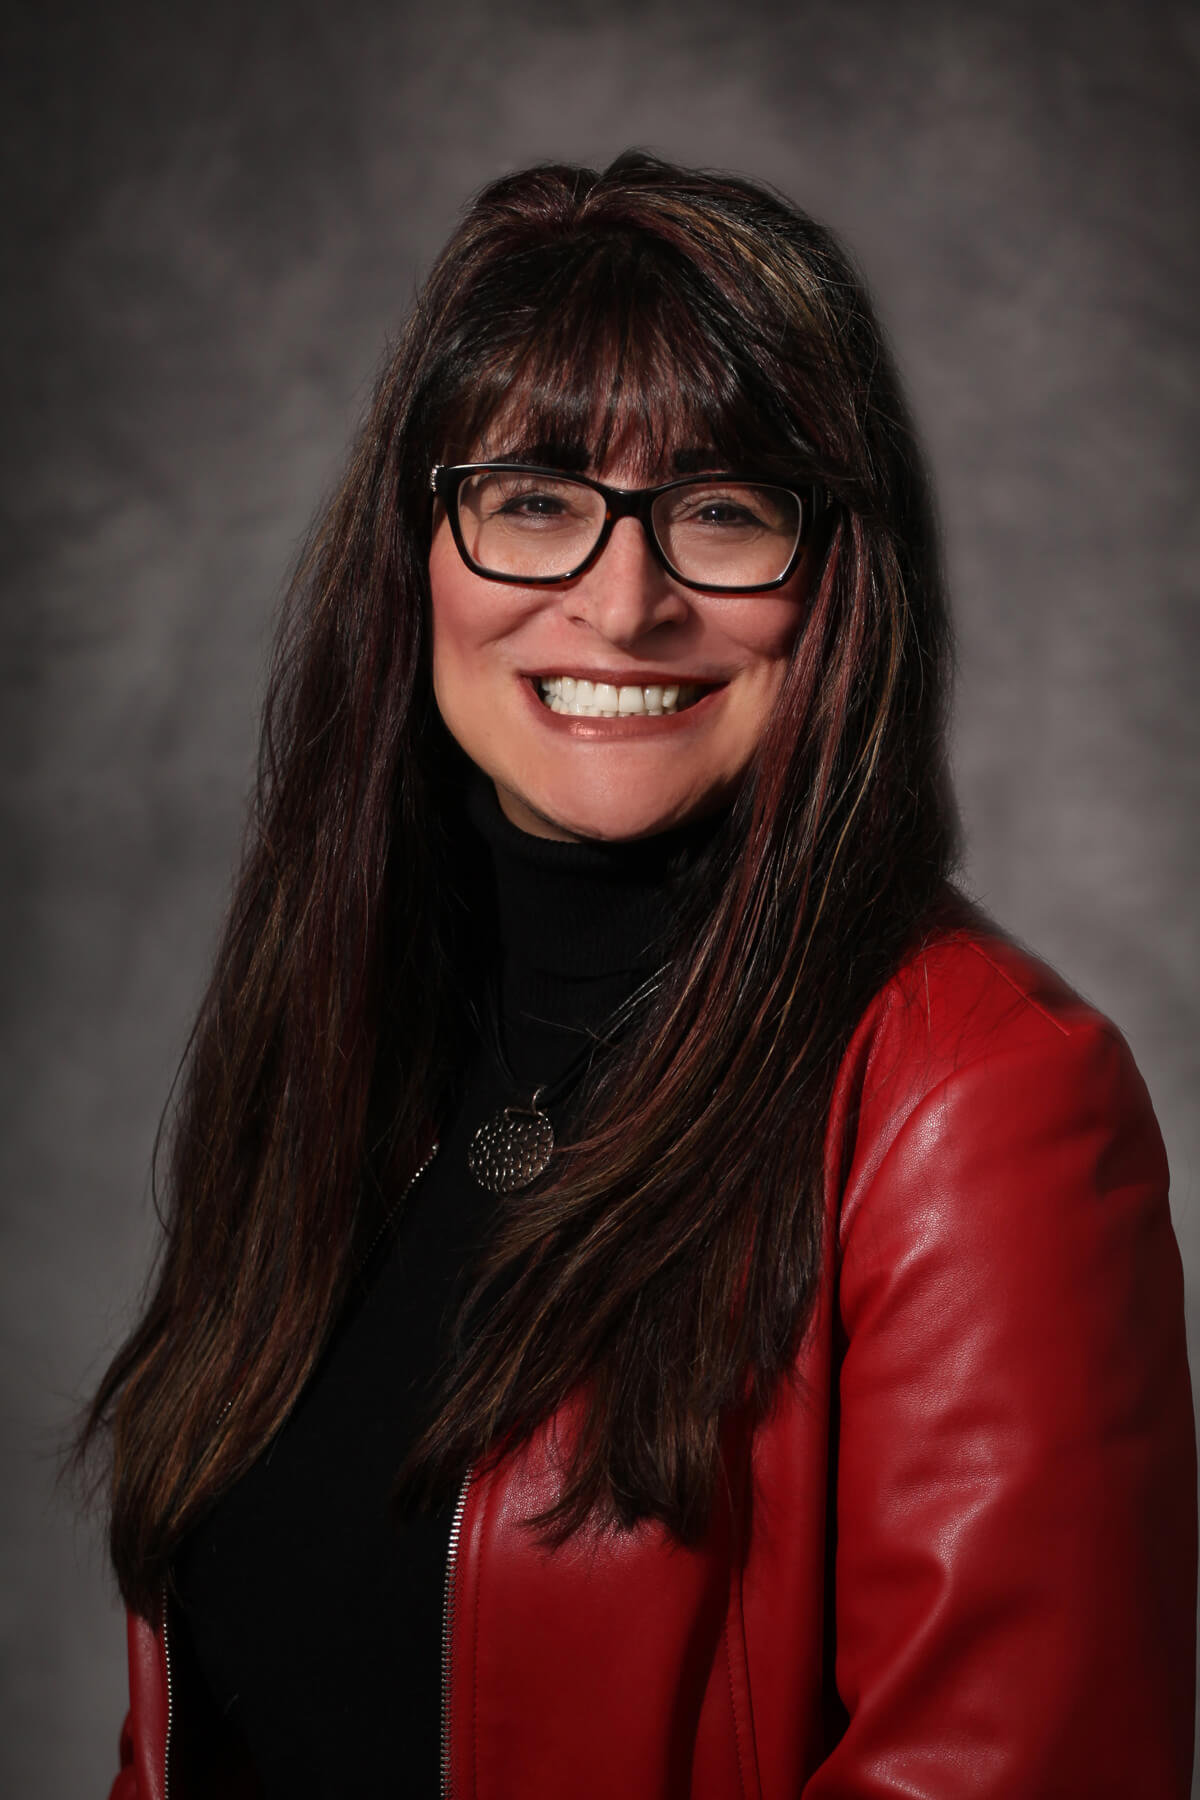 Irene Richardson, woman with long voluminous brown hair and black glasses wearing a red leather jacket